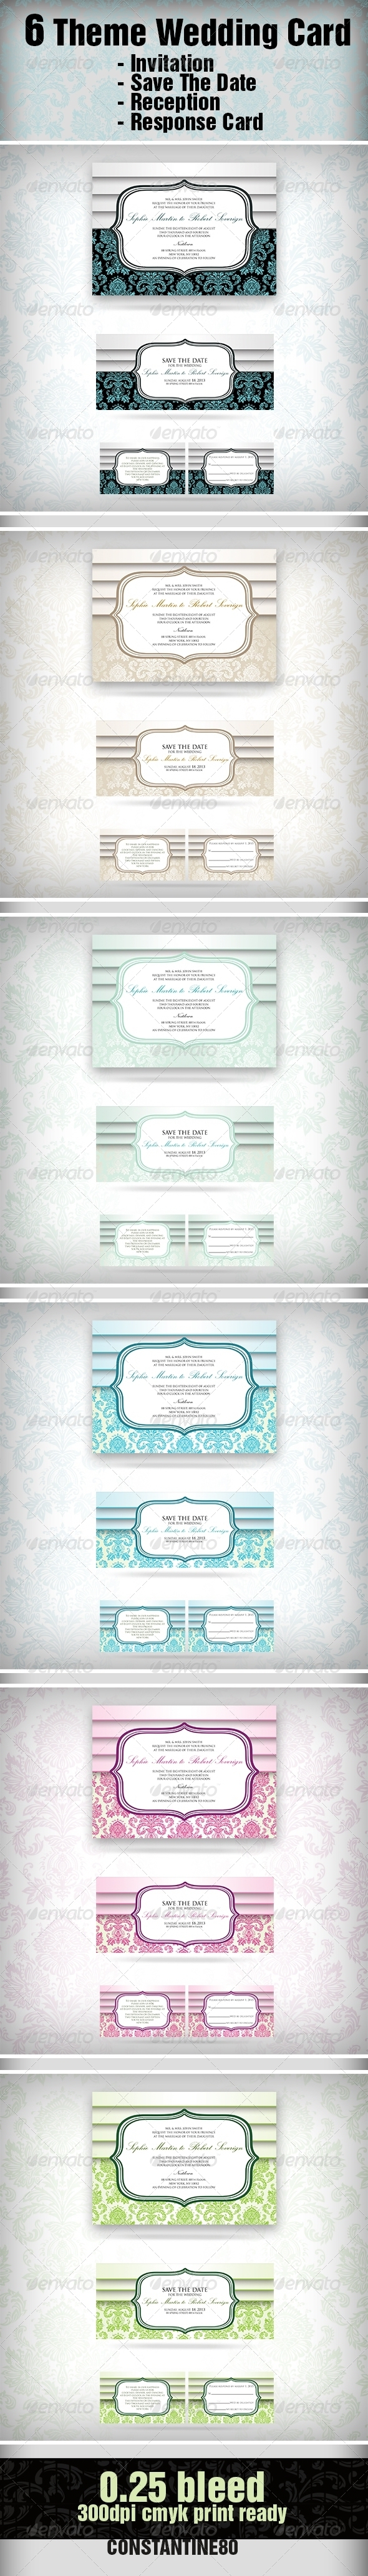 6 Theme Wedding Card - Weddings Cards & Invites